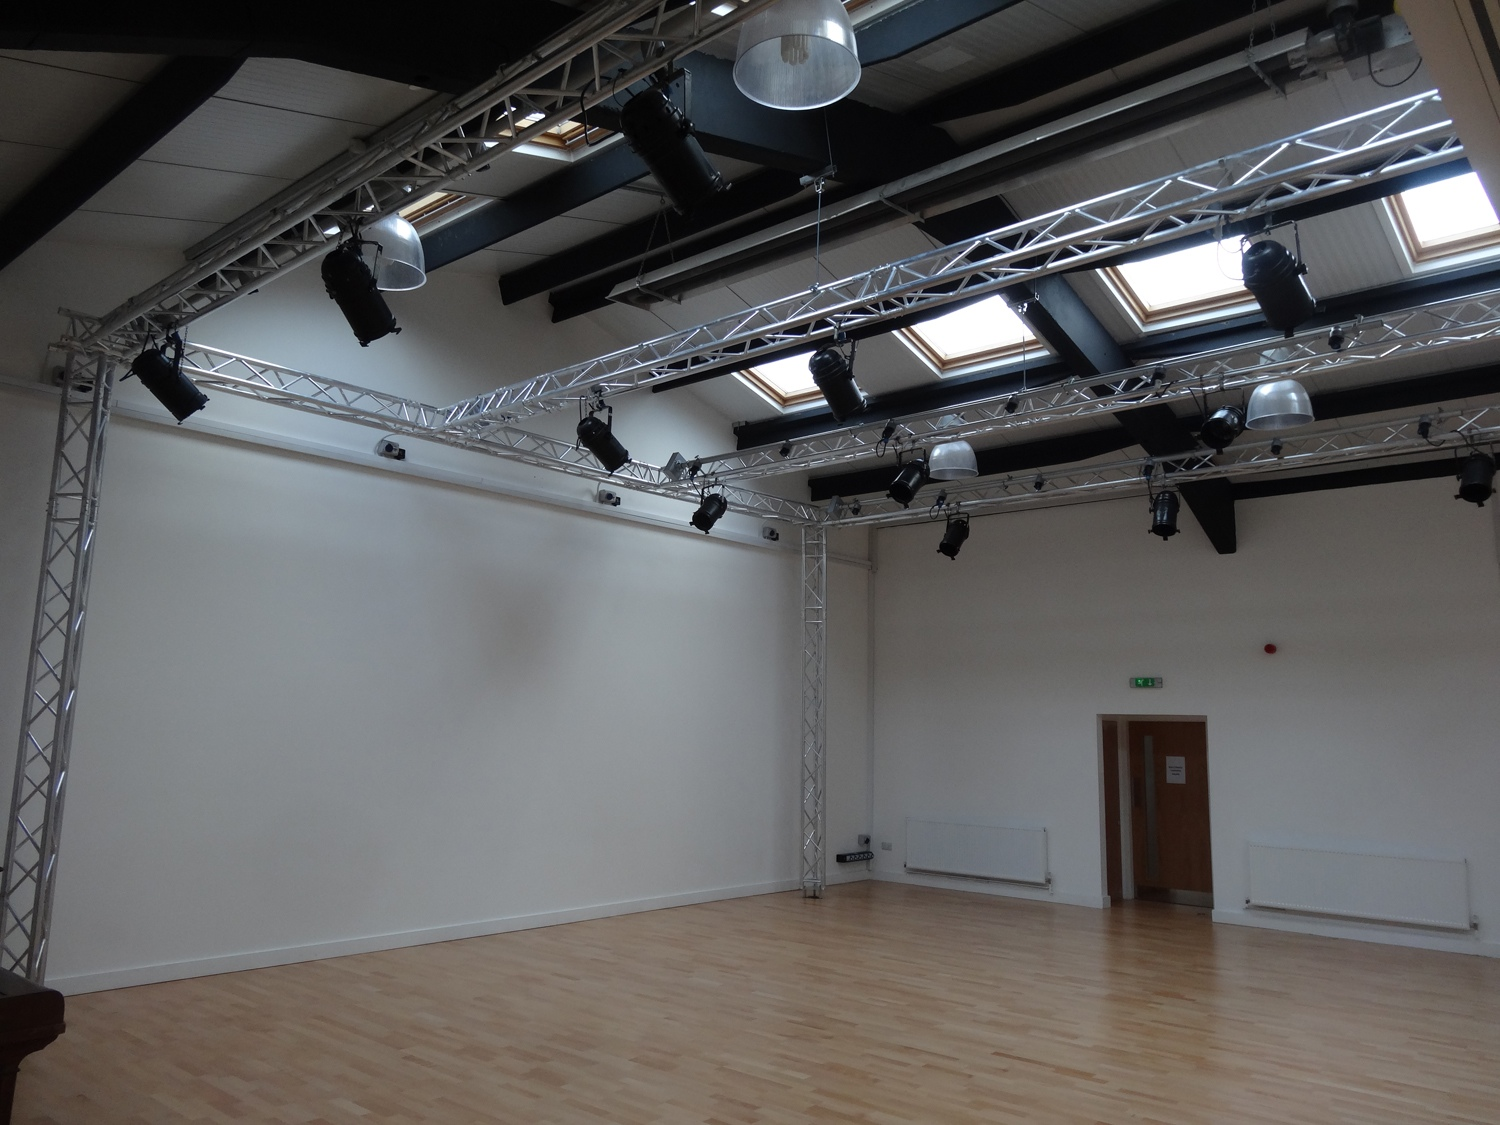 Dance Studio Installation Rigging Equipment Amp Lighting